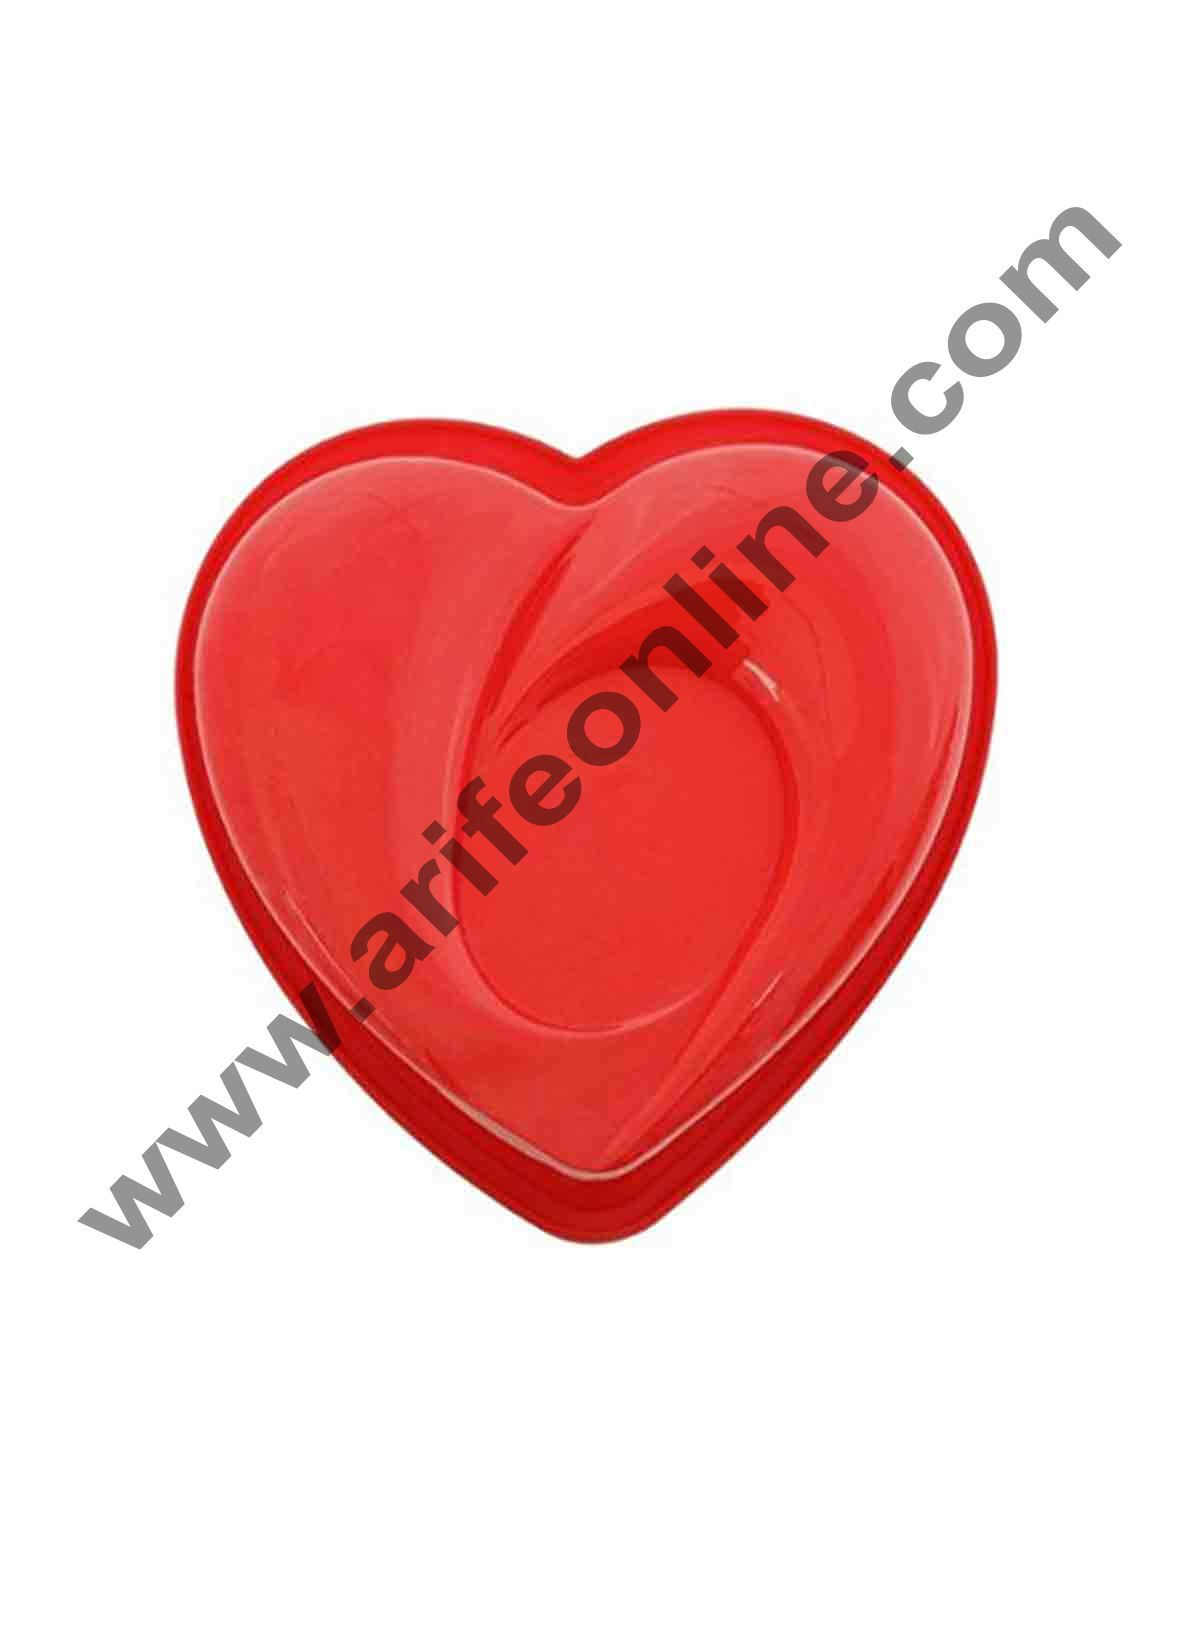 Cake Decor Silicon Heart Shape Cake Mould Mousse Cake Mould Silicon Moulds